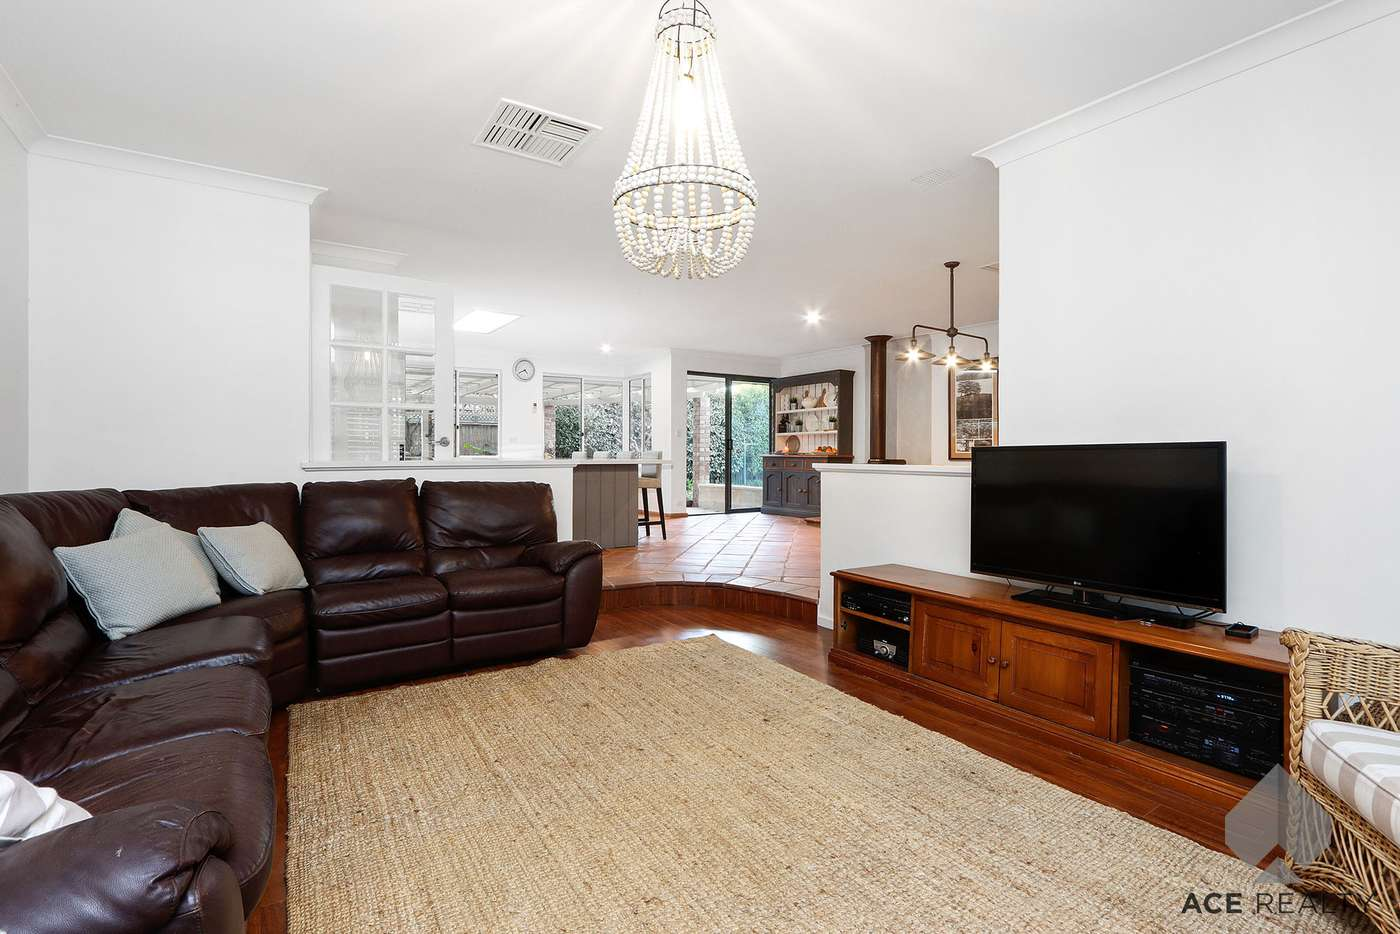 Seventh view of Homely house listing, 6A Atkins Road, Applecross WA 6153